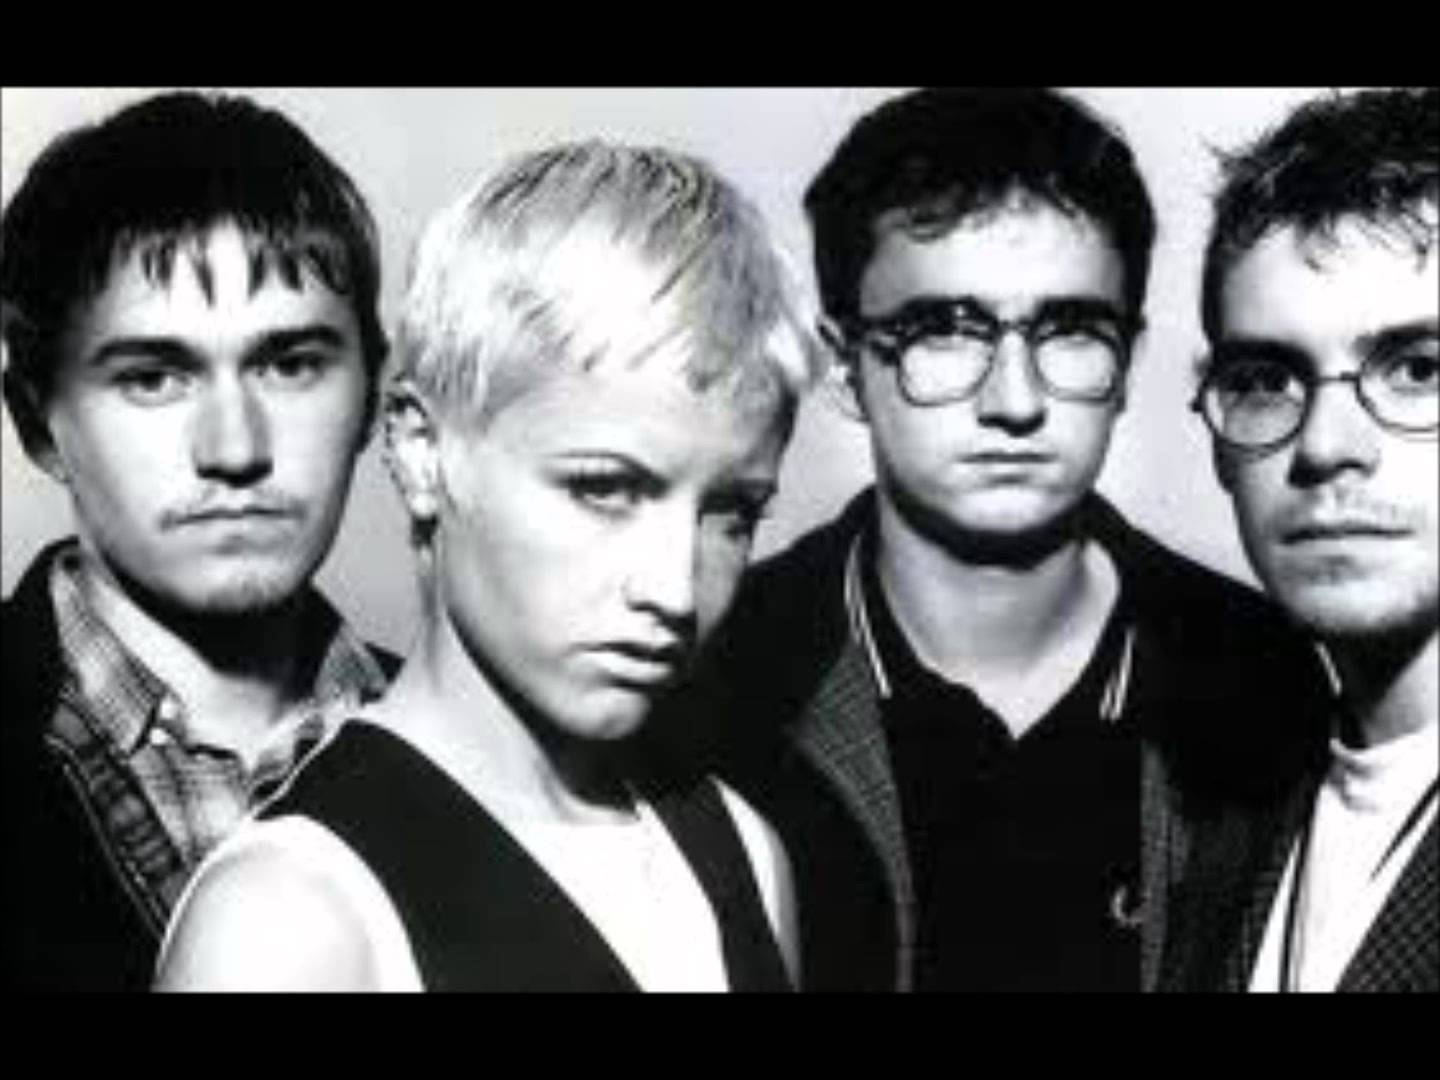 High Resolution Wallpaper | The Cranberries 1440x1080 px